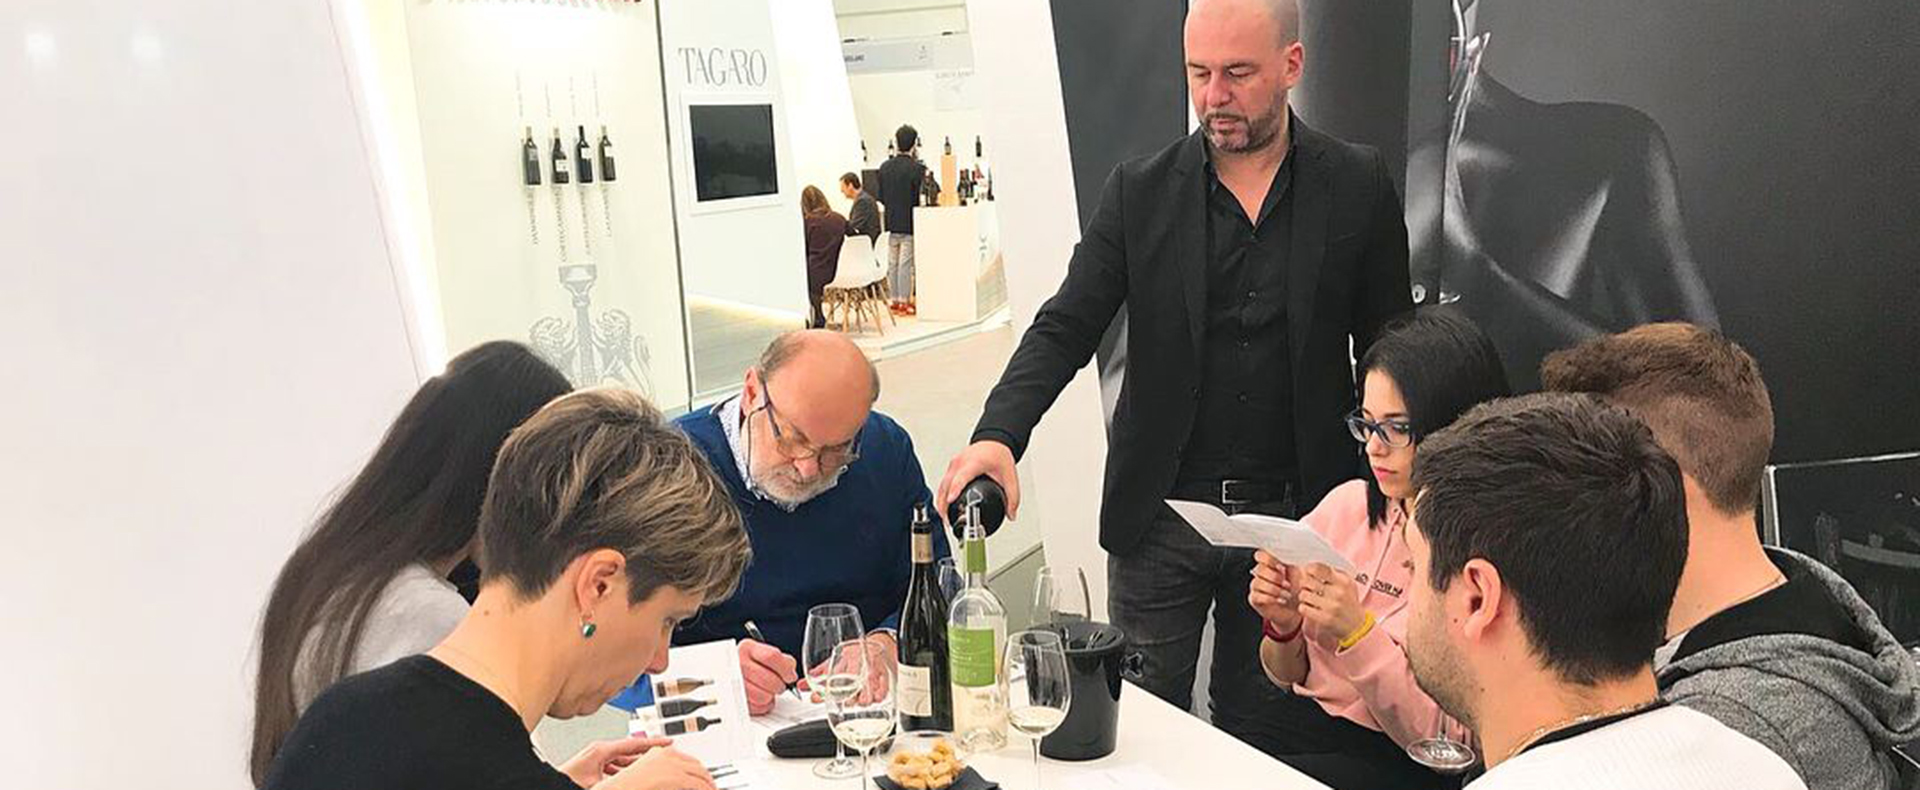 Taste with Paolo and Gianni at the Winebow/LLS Vini d'Italia tastings next week!